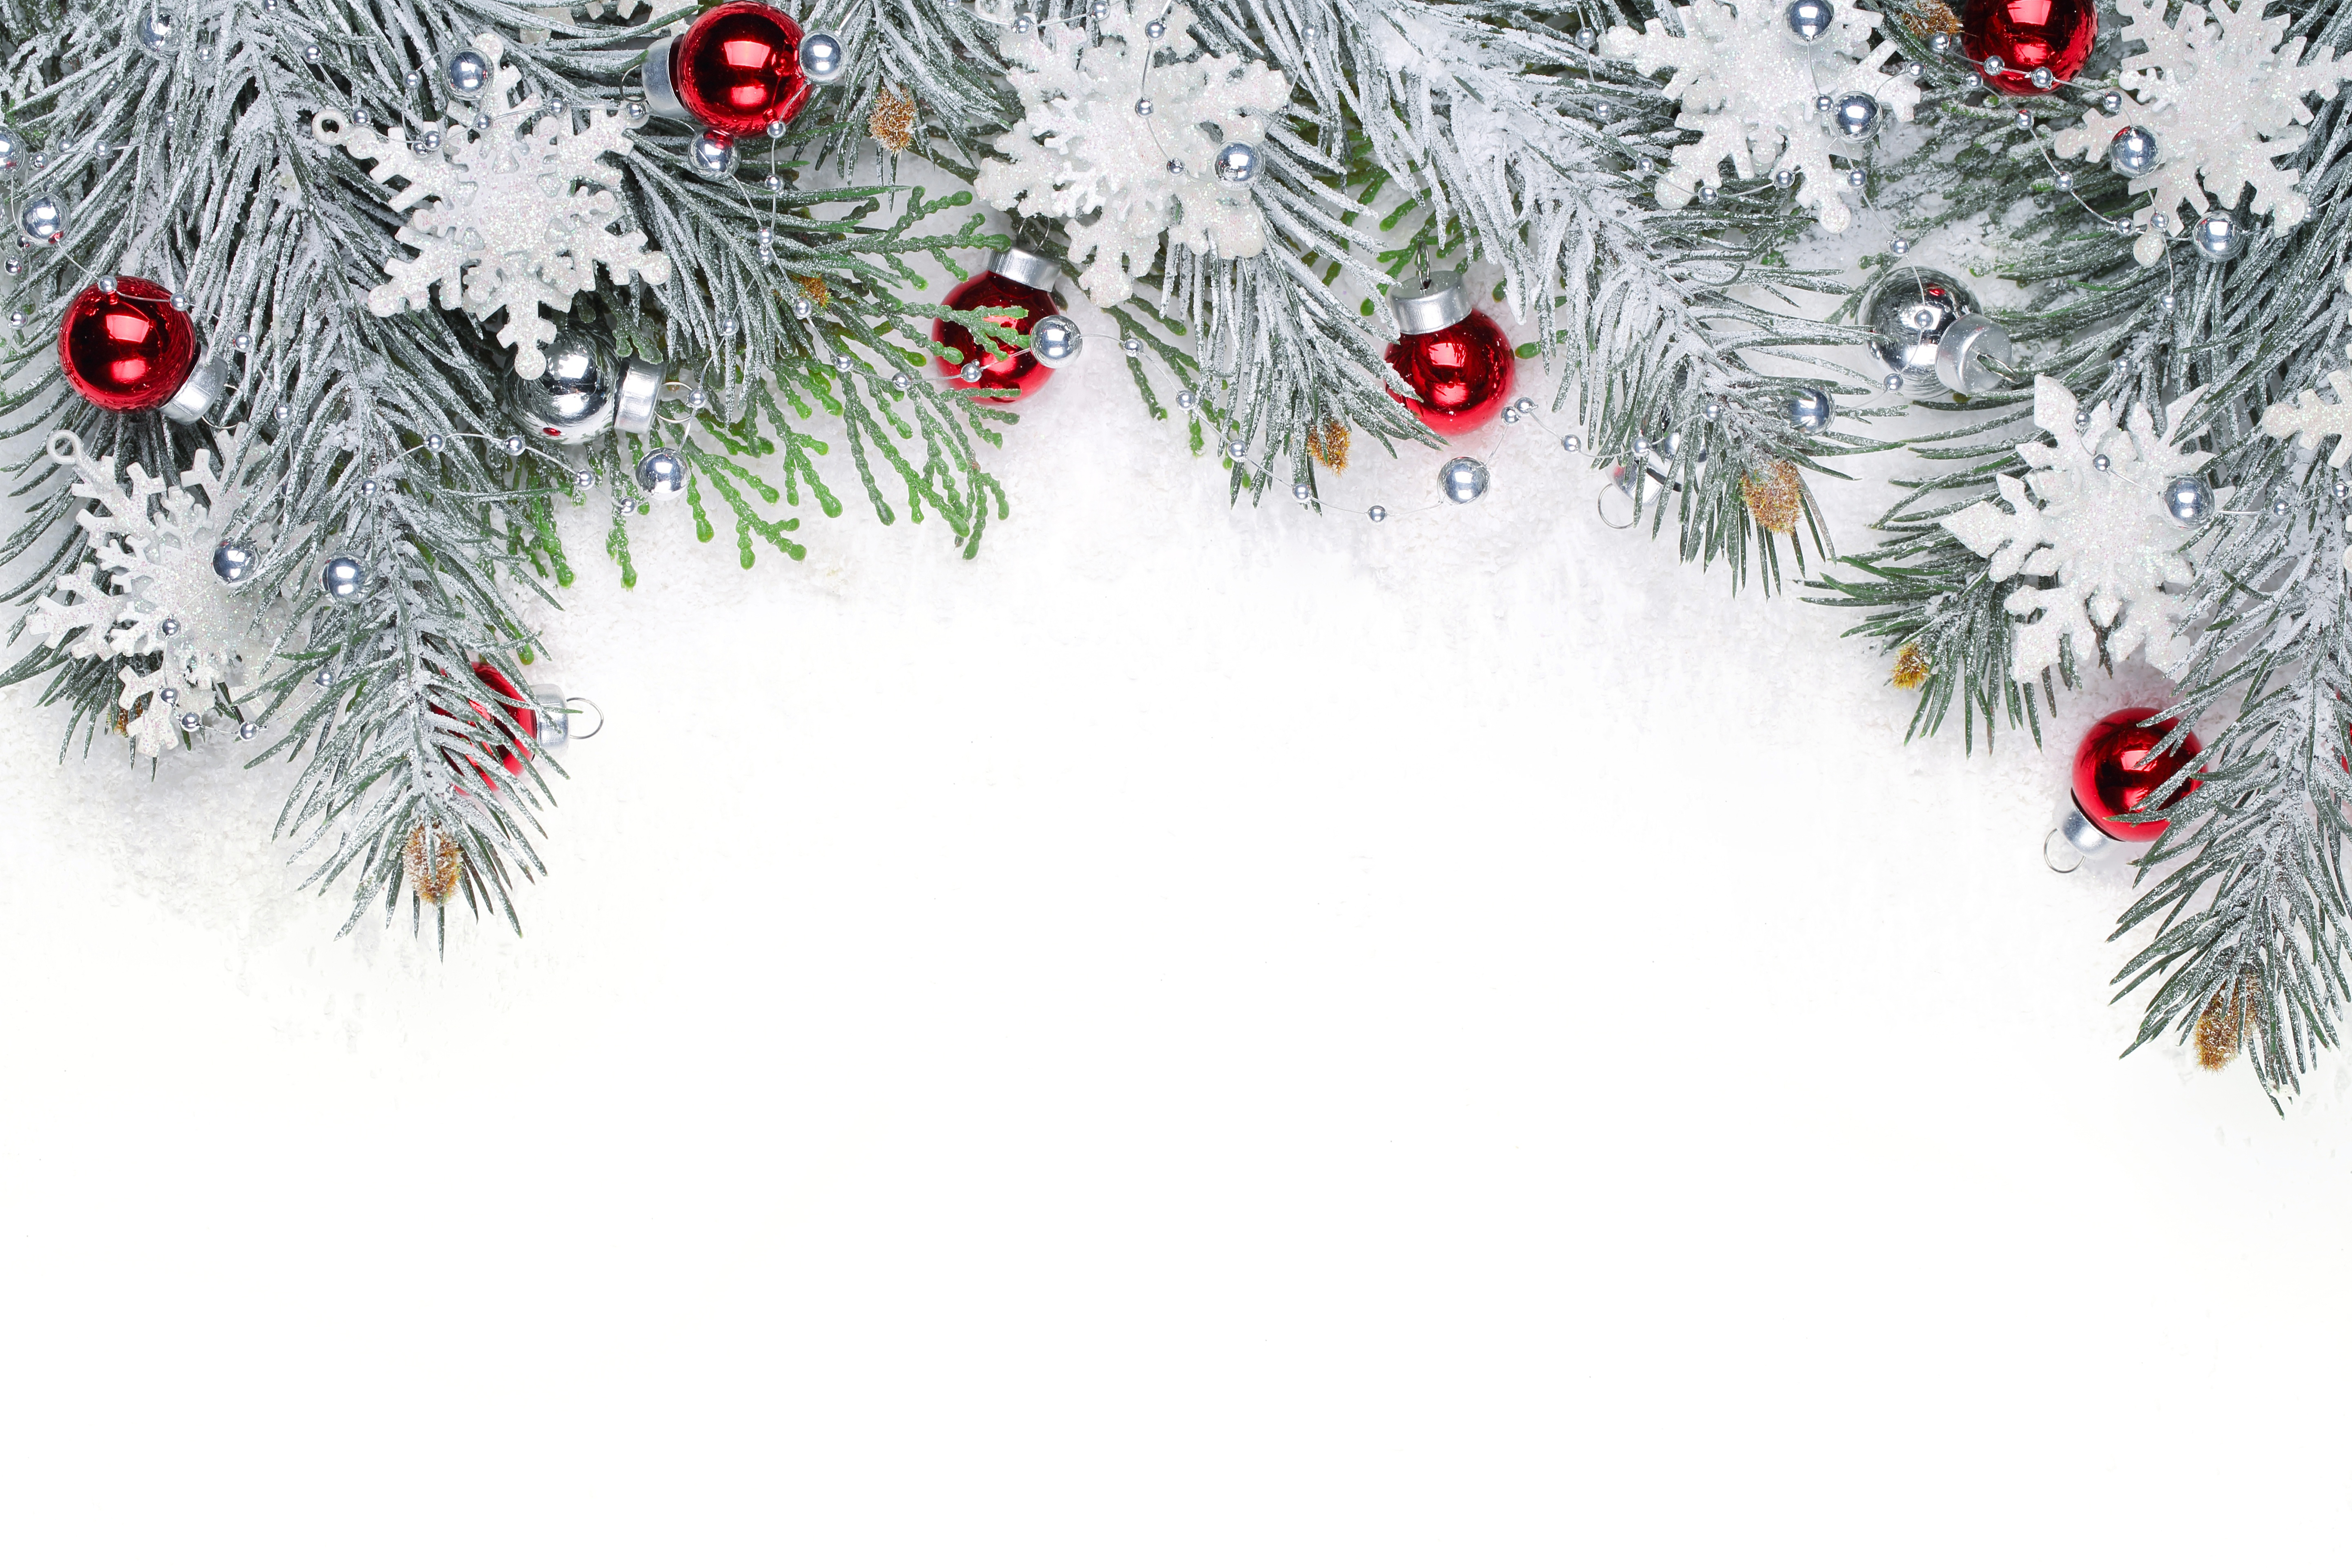 Snowy Christmas Backgrounds Png - Christmas Snowy Background with Red Ornaments | Gallery ...